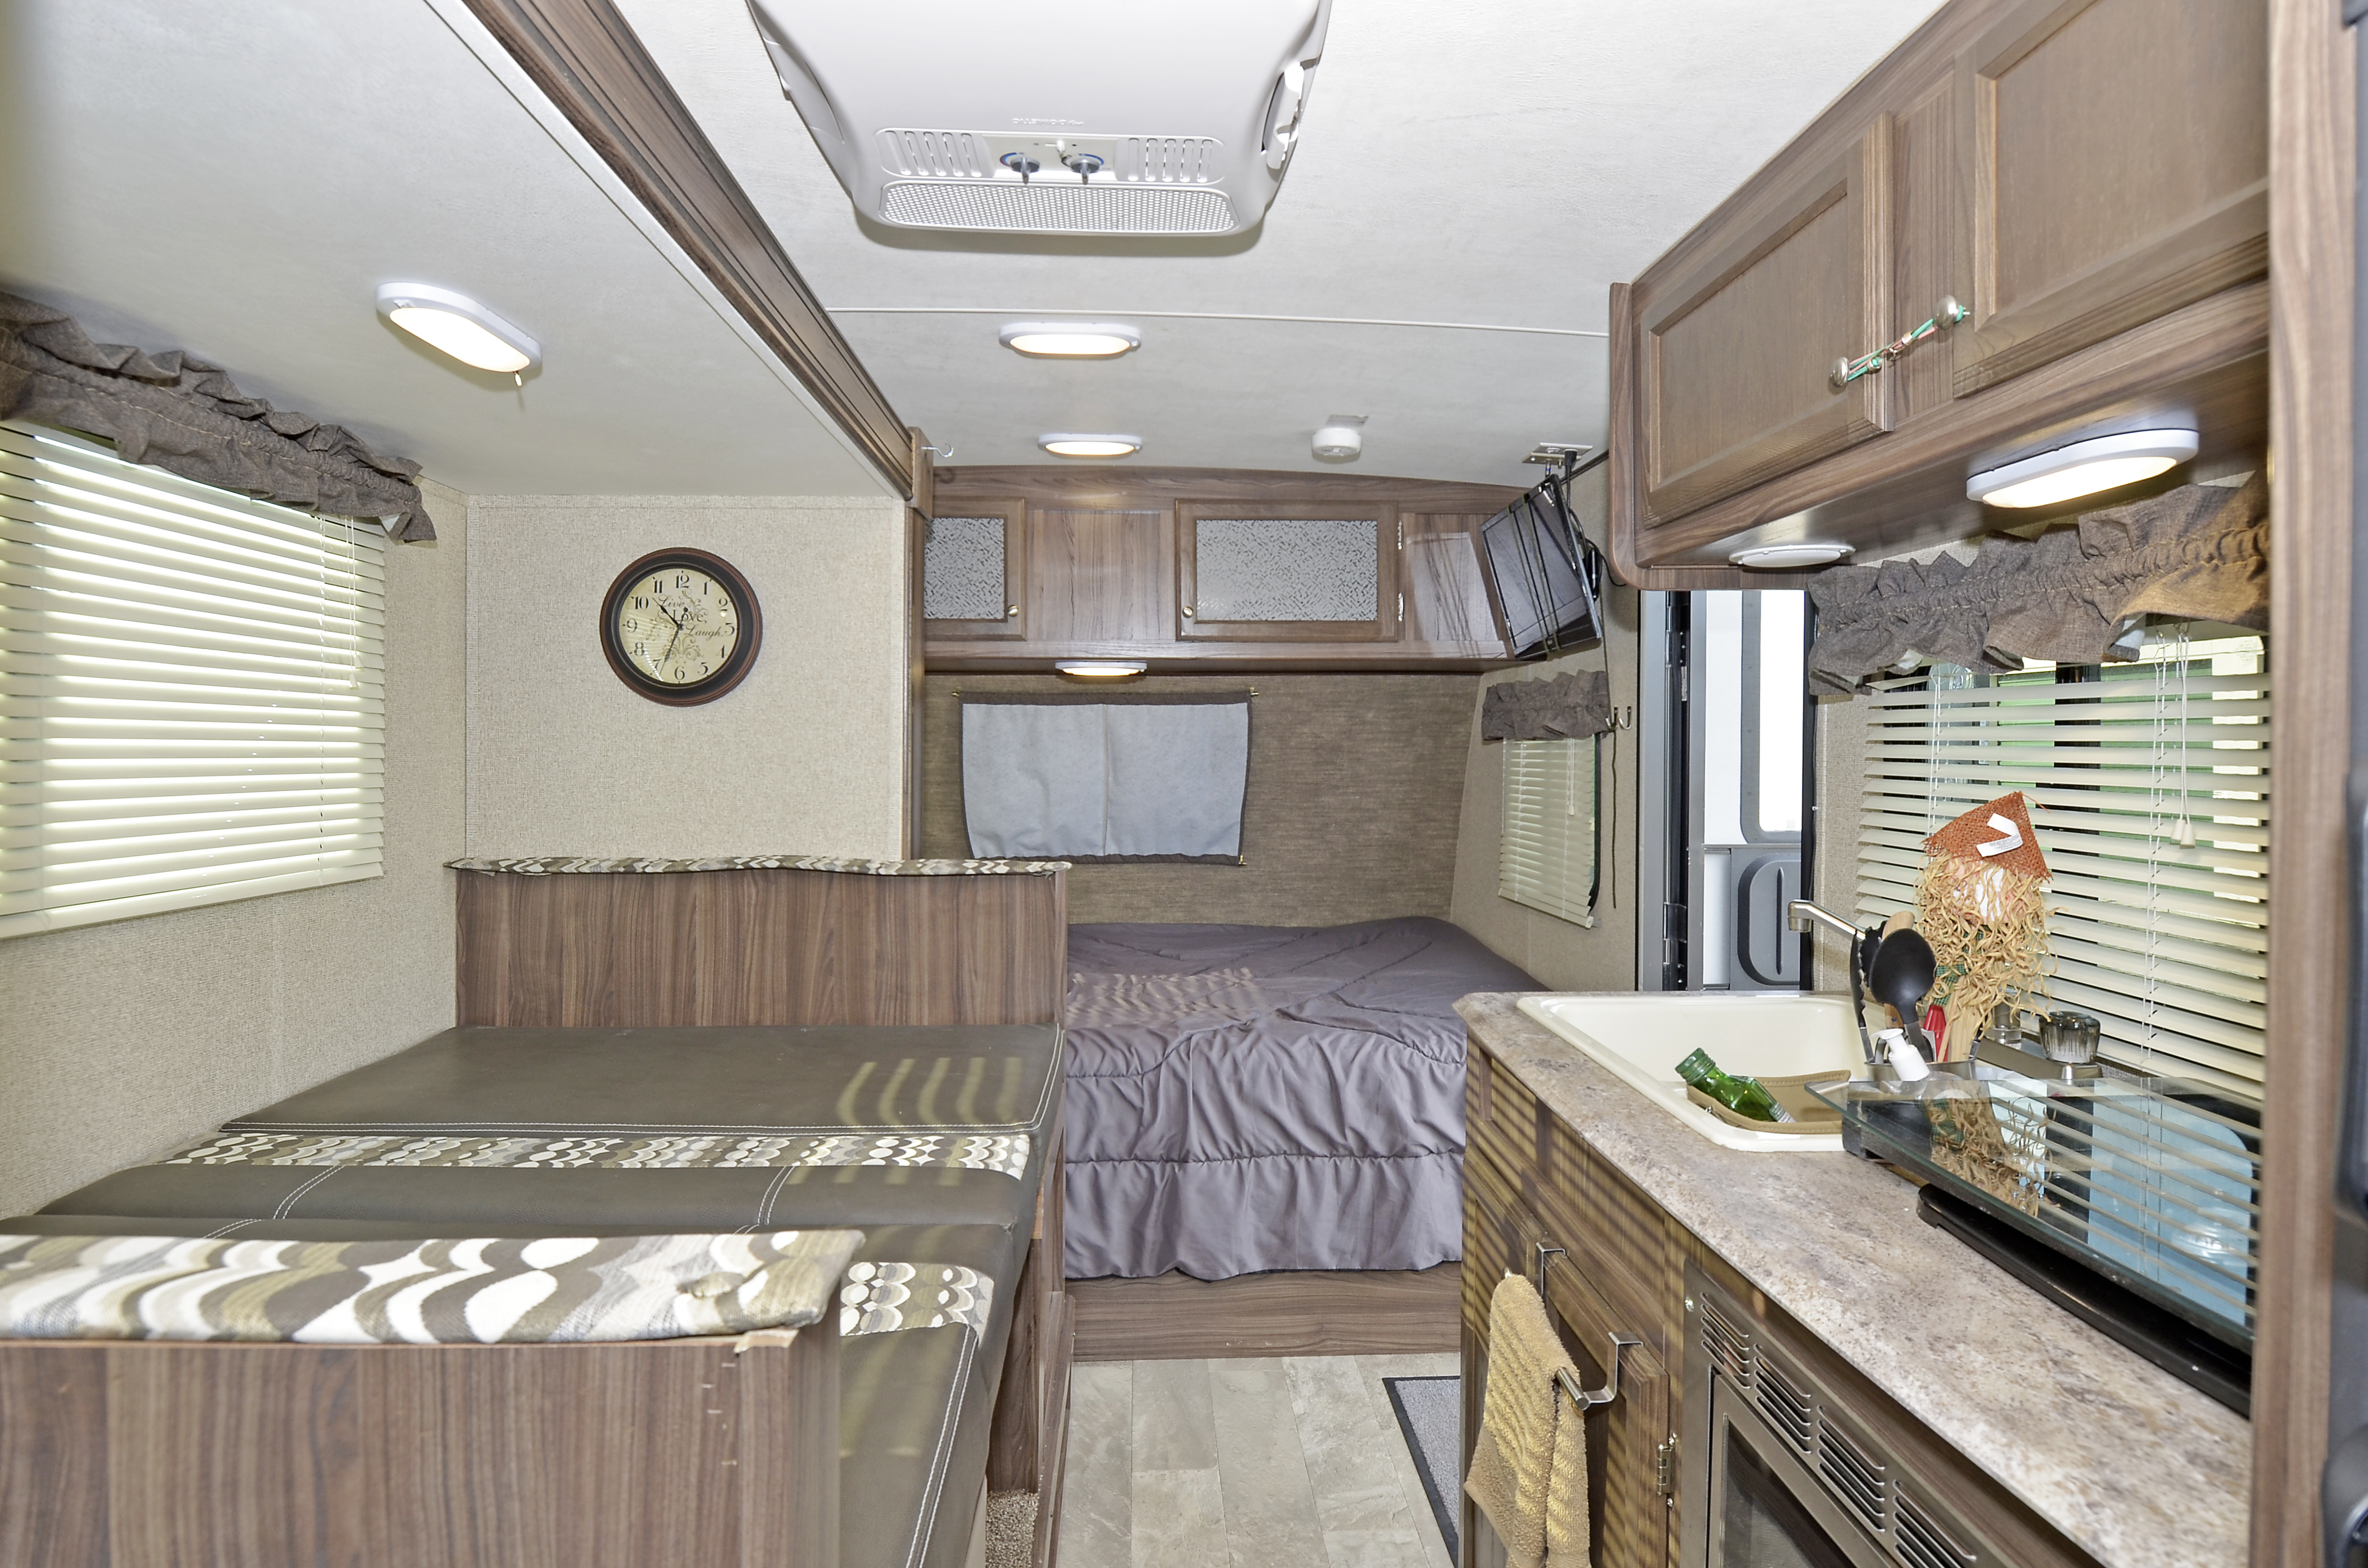 Table used as bed - fits 2 (or 1 adult comfortably) / storage under cushions. AC on ceiling. . Coachmen Apex 2018